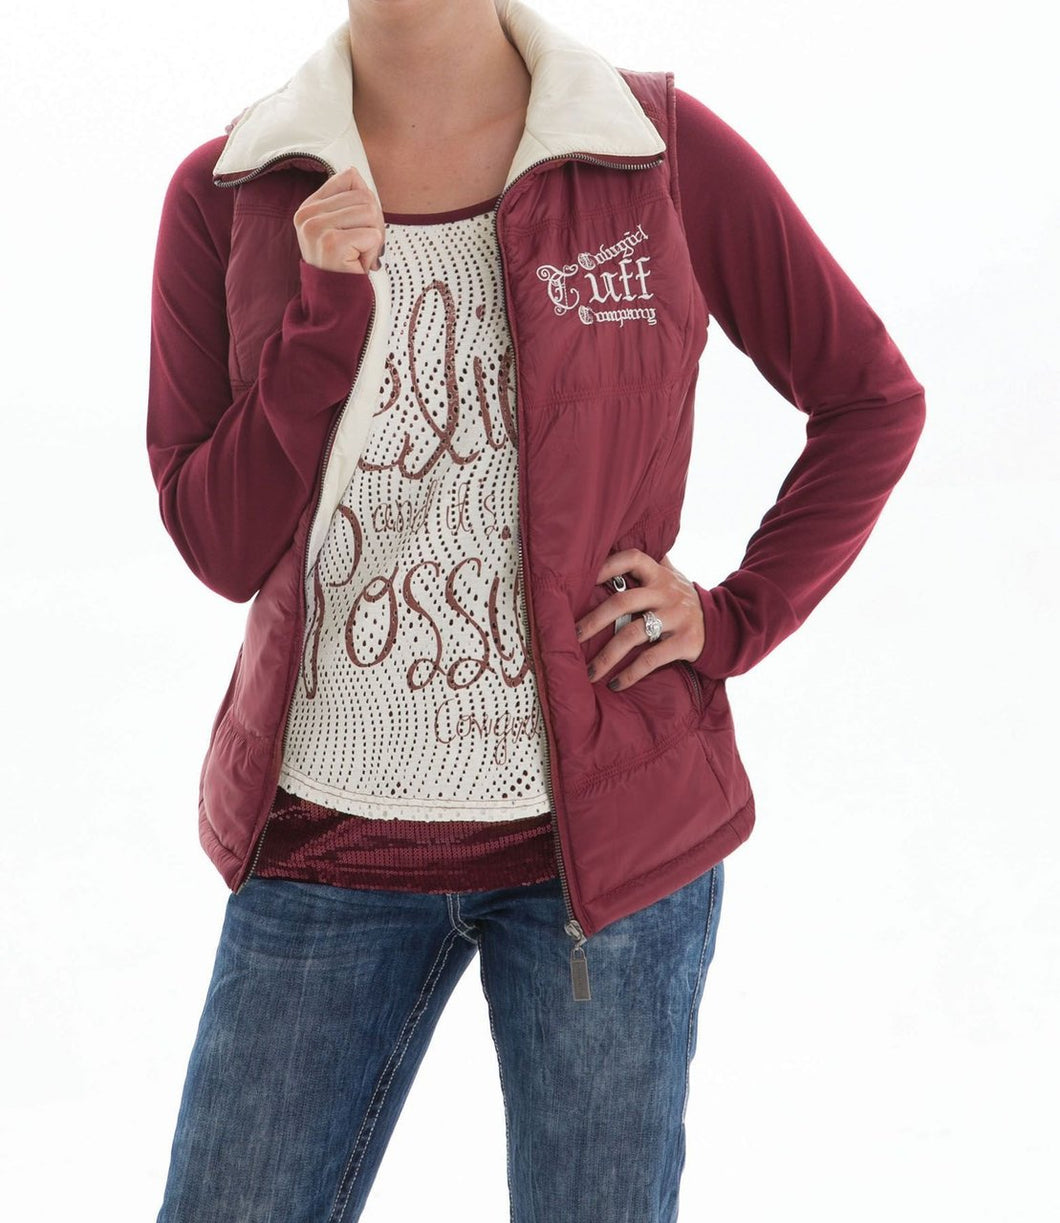 Cowgirl Tuff Ladies Burgundy and Cream Reversible Vest